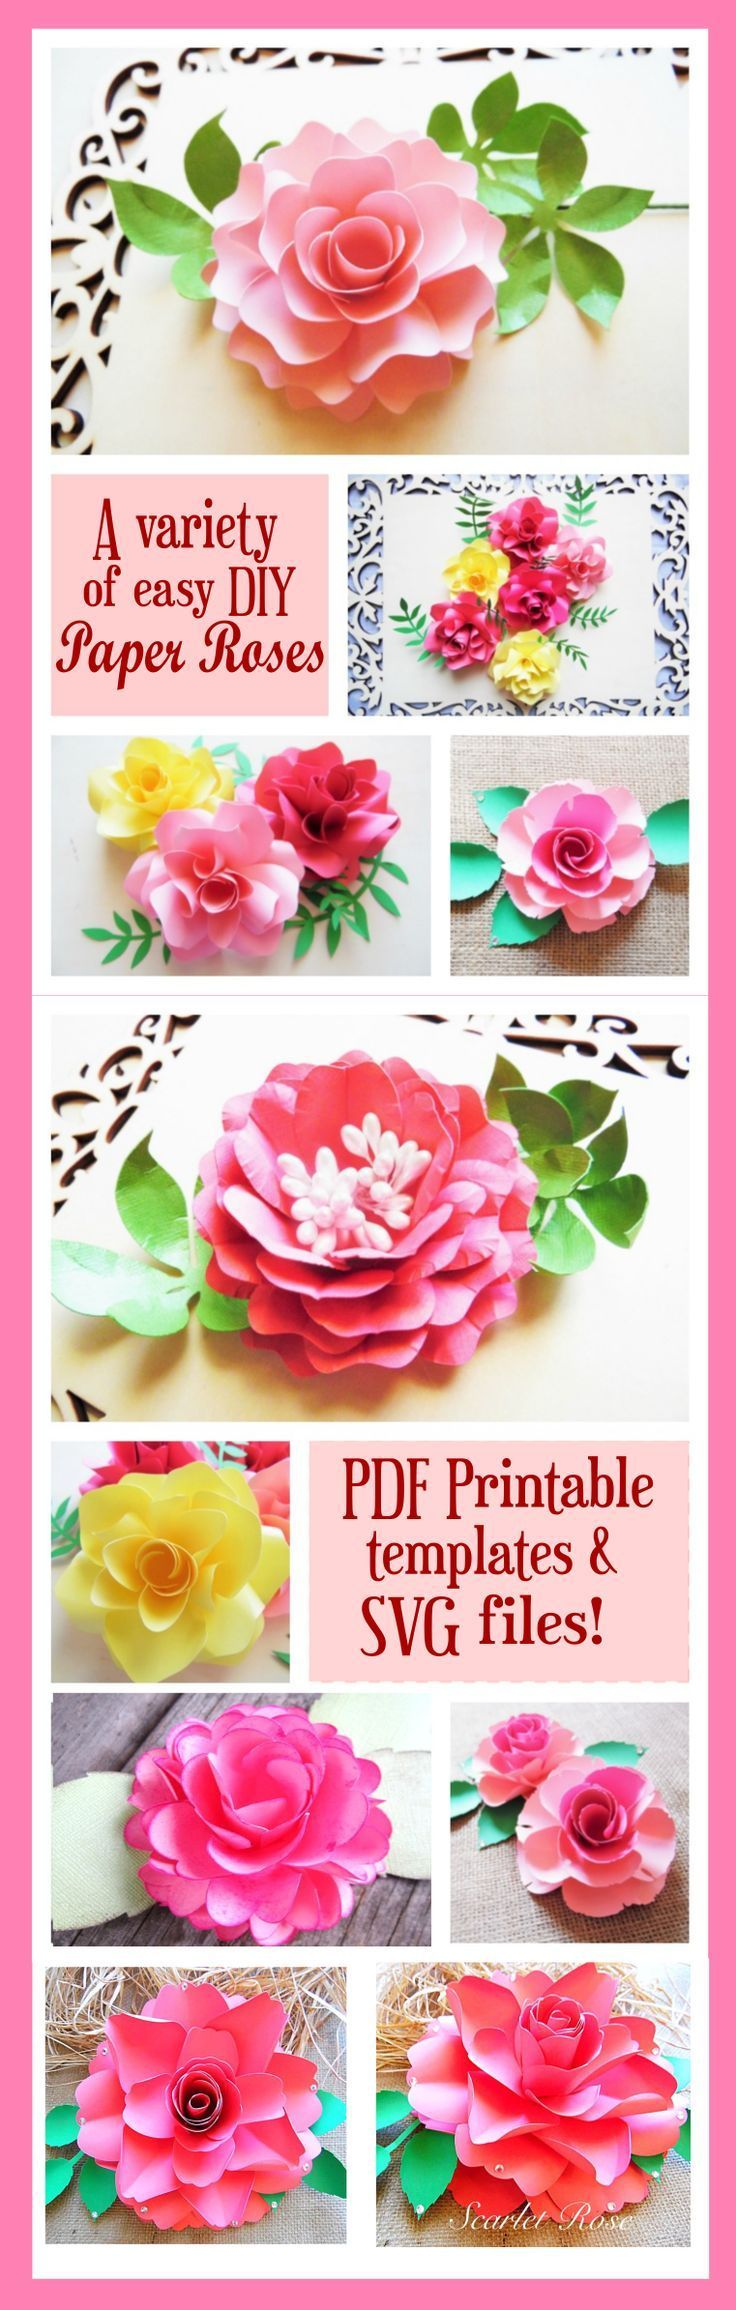 A variety of step by step paper rose DIY tutorials for Silhouette